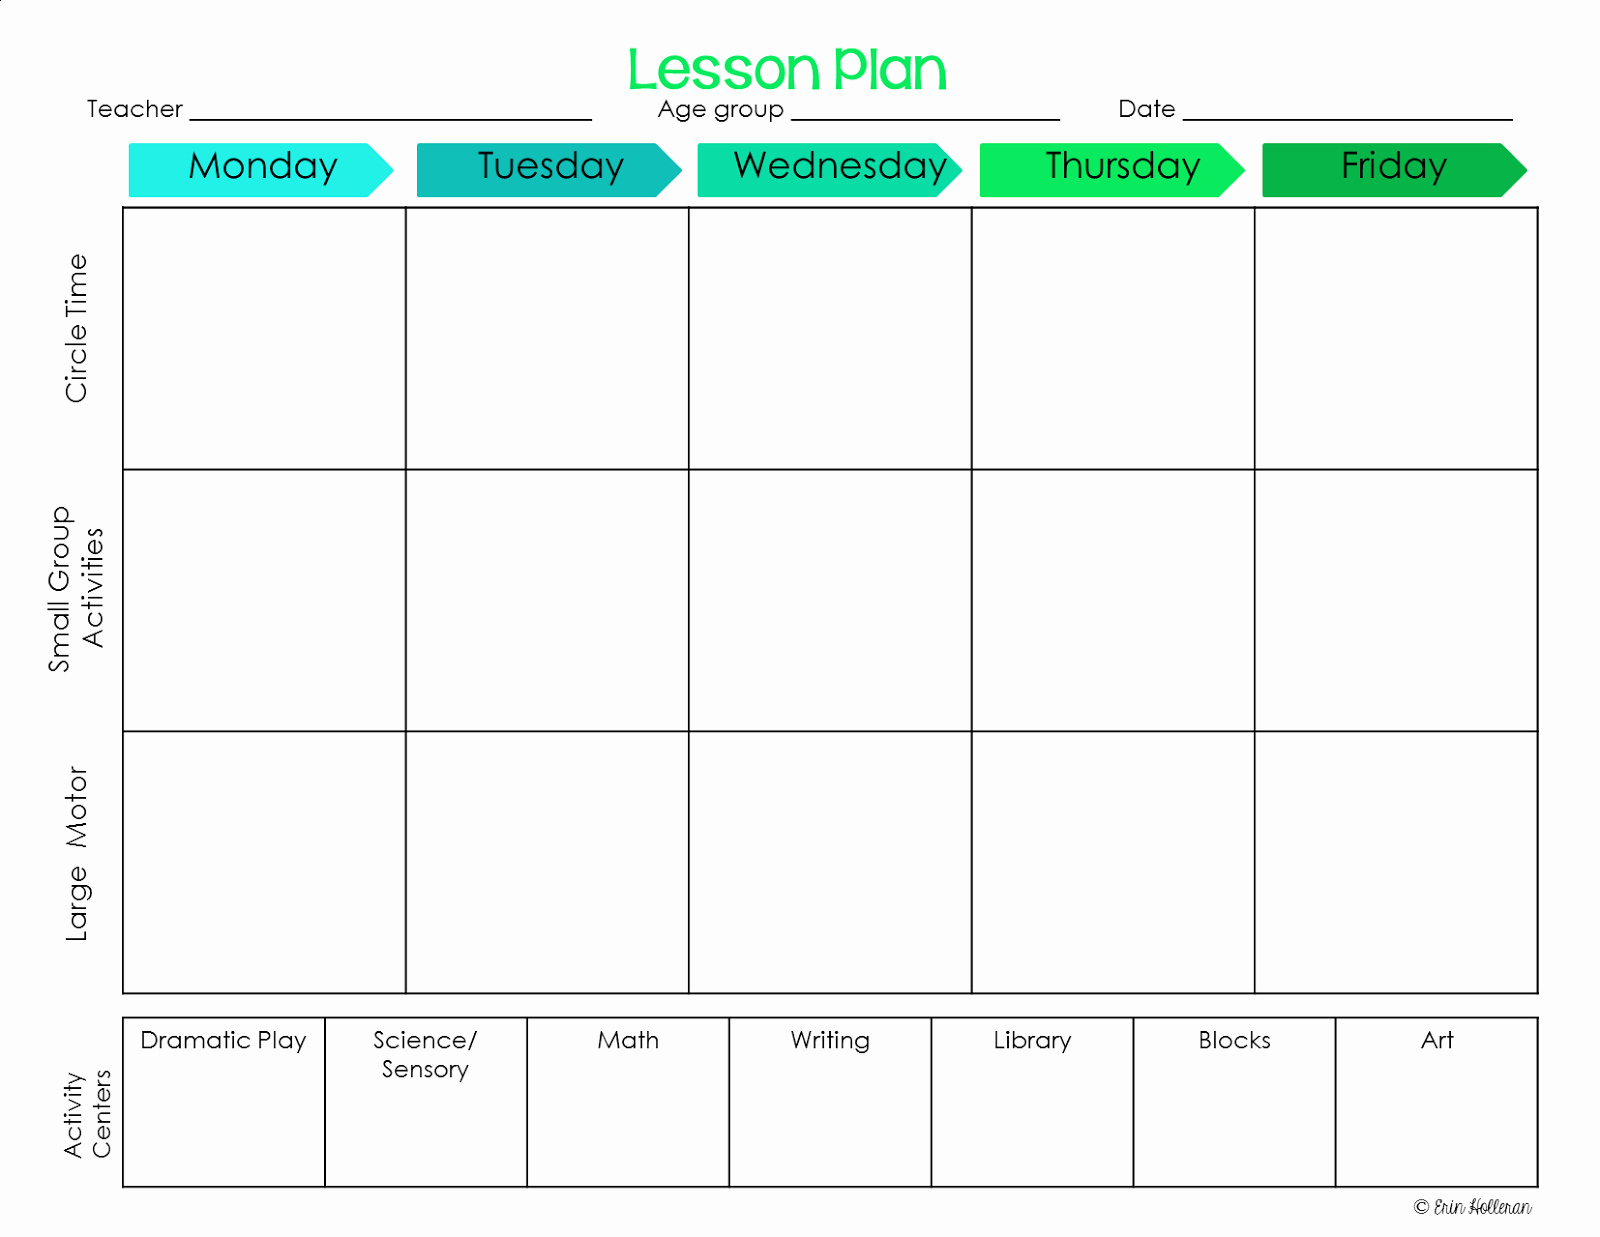 Lesson Plans Templates for toddlers Beautiful Preschool Ponderings Make Your Lesson Plans Work for You